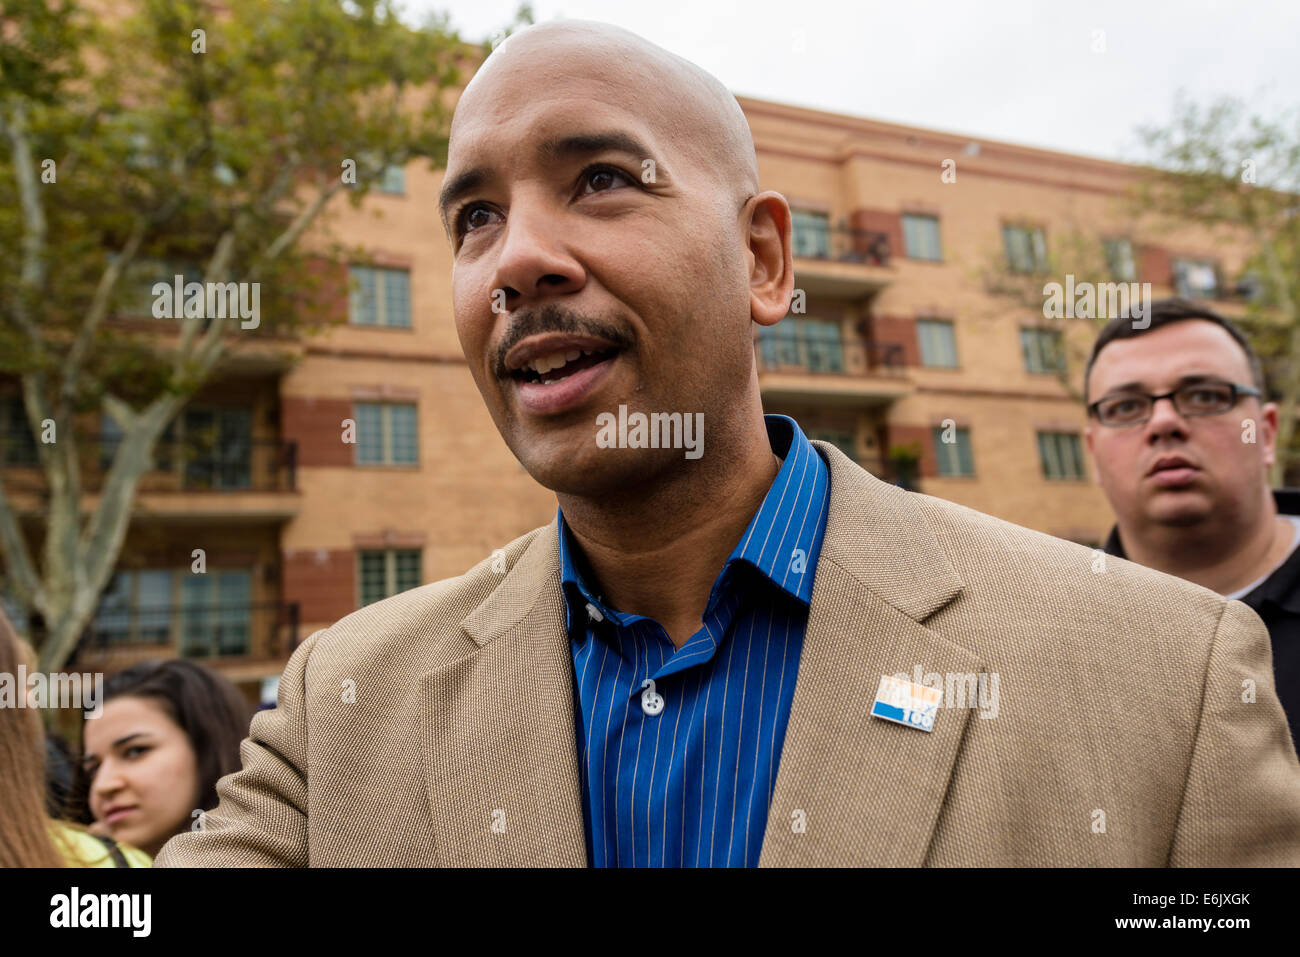 Staten Island, NY - 23 August 2014 - Bronx Borough President Ruben Diaz jr -march for Eric Garner ©Stacy Walsh - Stock Image